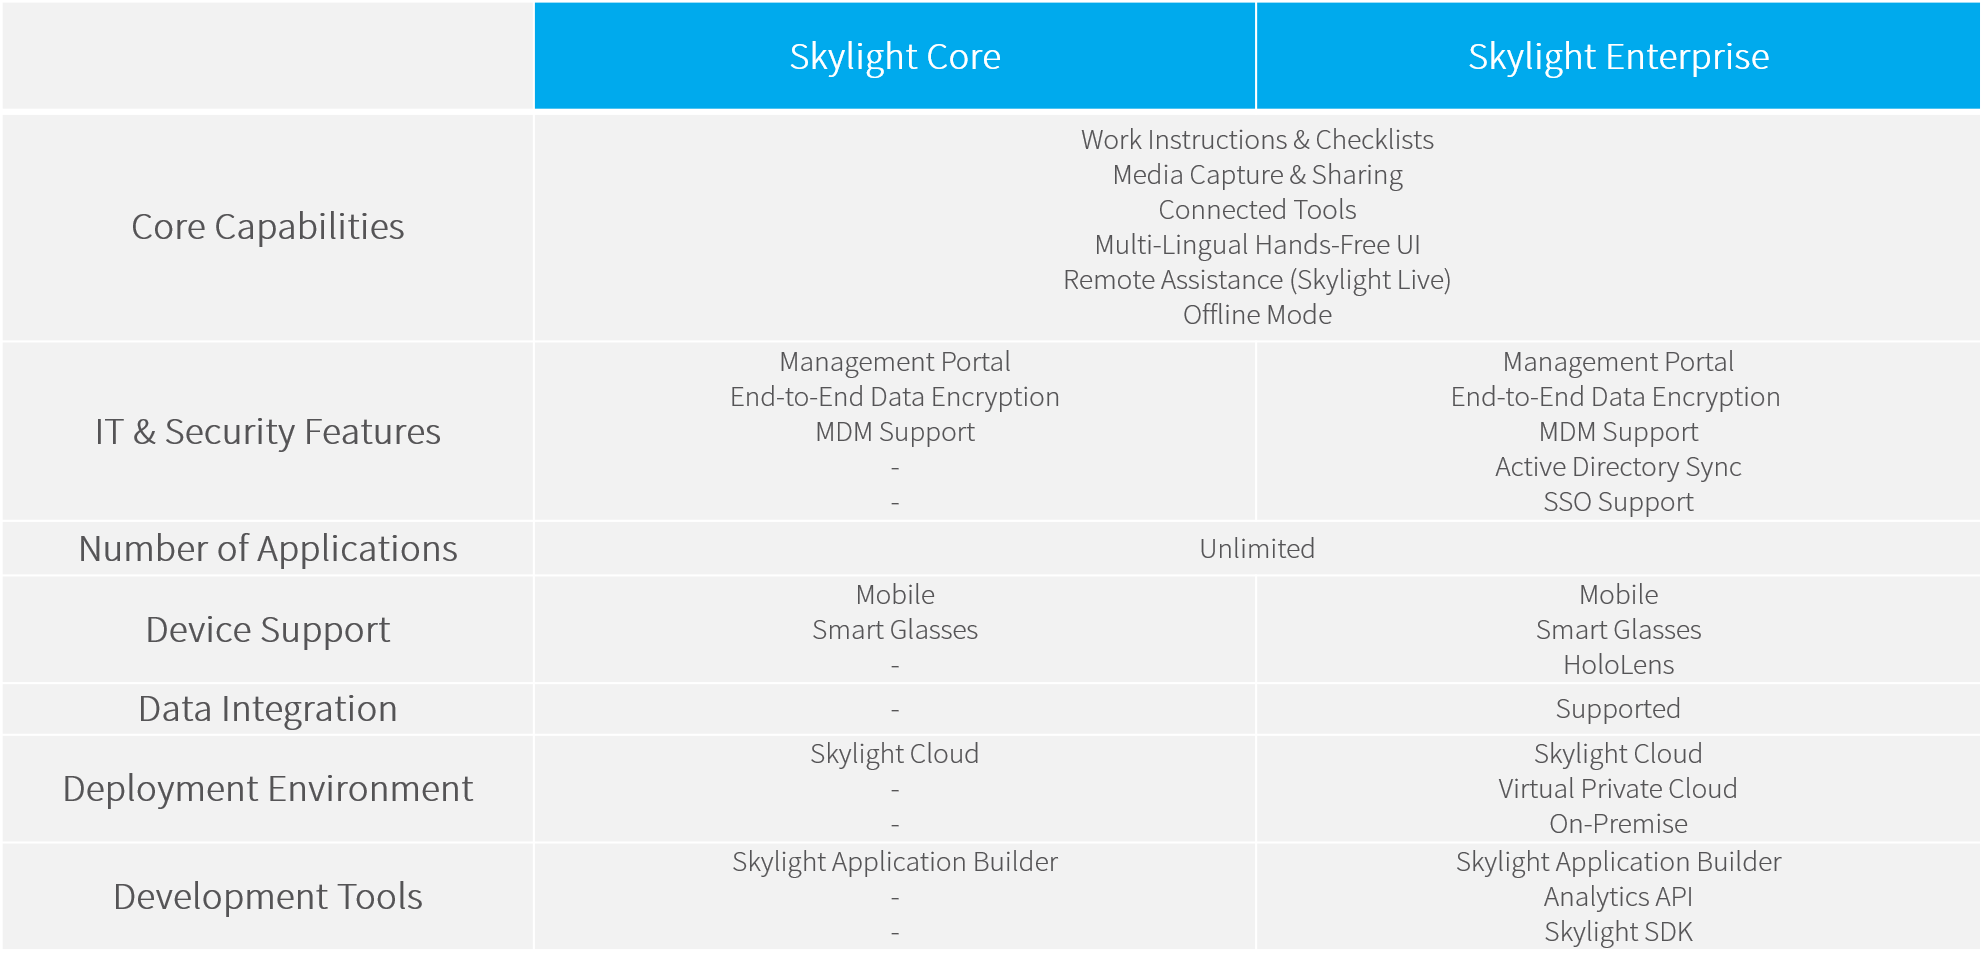 Skylight Core and Enterprise